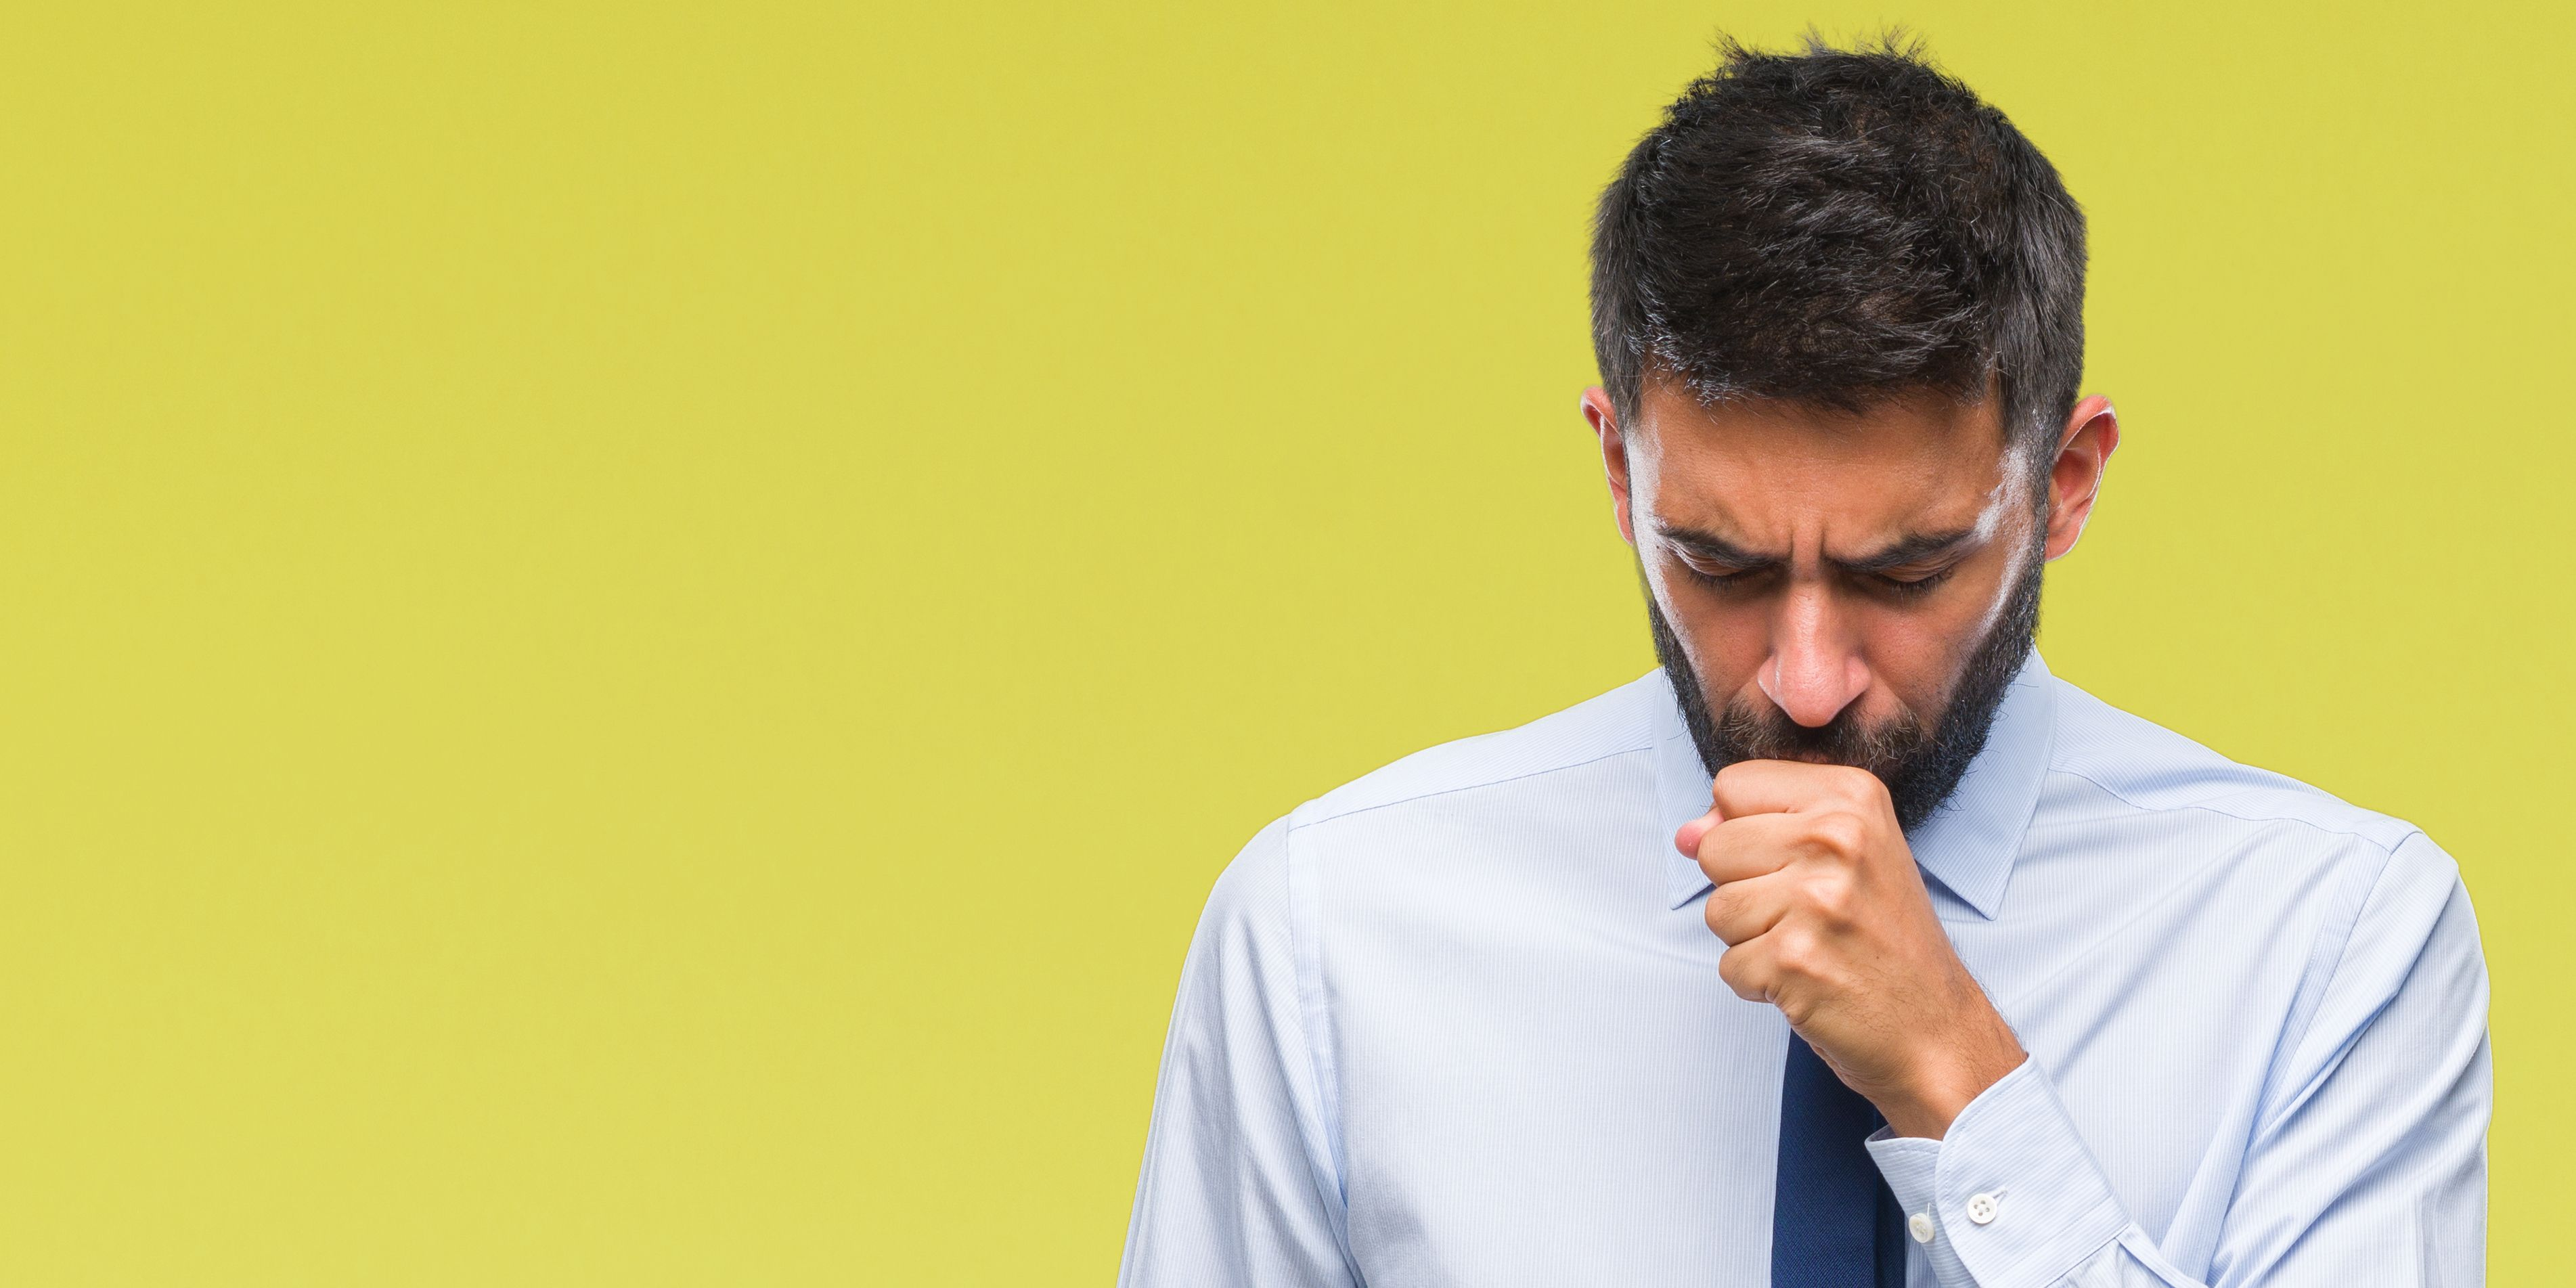 Adult hispanic business man over isolated background feeling unwell and coughing as symptom for cold or bronchitis. Healthcare concept.